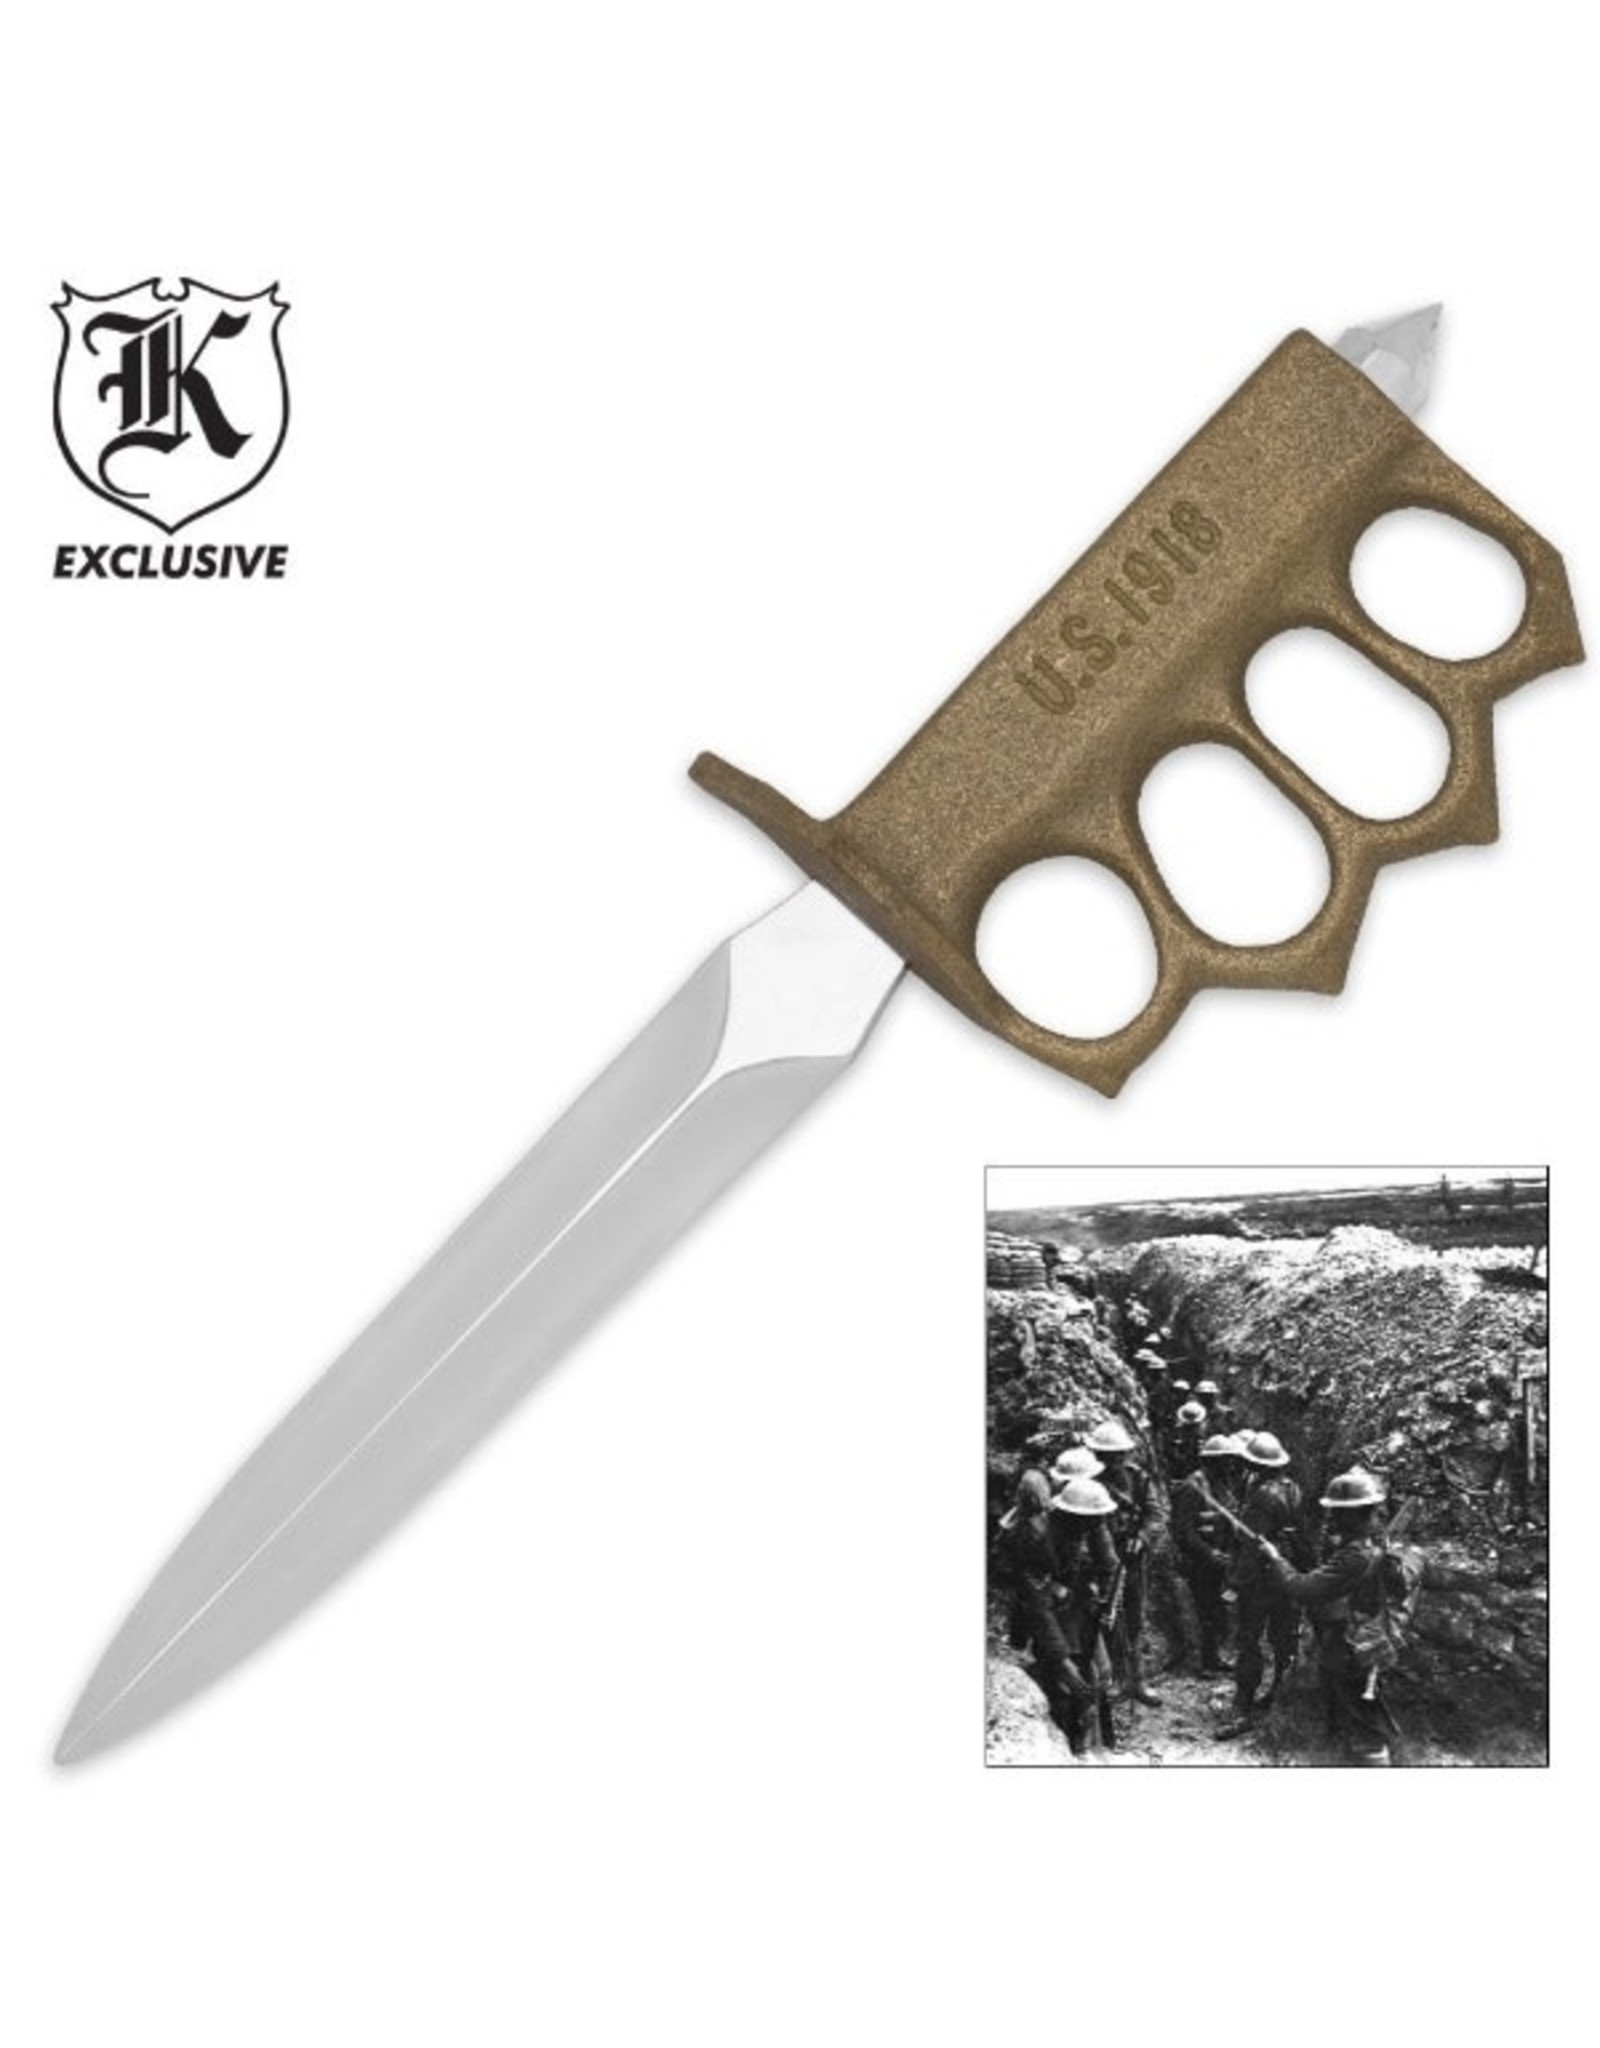 WWI 1918 Trench Knife with Sheath - Replica